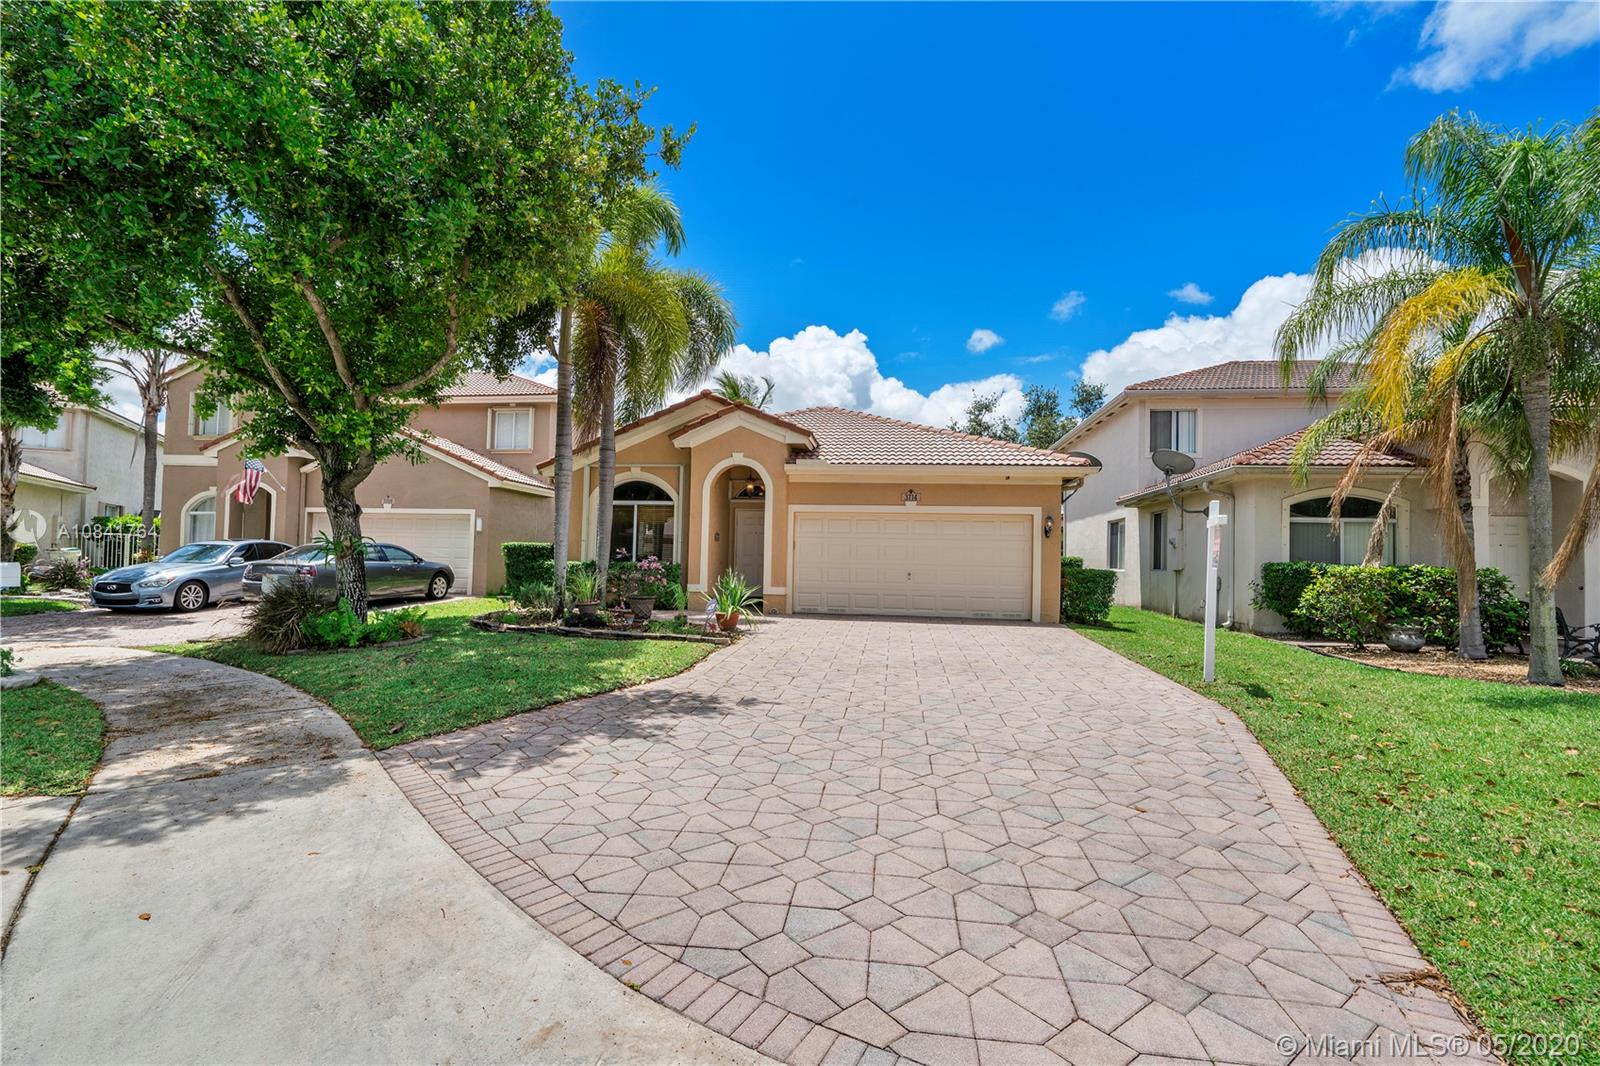 New Listing!Beautiful One Story Home Located on Interior Lakefront Lot + Cul-de-Sac Location perfect for any Family with A+Schools in Coconut Creek. Updated Kitchen with Tumble Marble Back-Splash with Stainless Steel Appliances and Granite Counters and Breakfast Bar which opens to Breakfast Area & Family Room w/Lake Views.Custom Crown Moldings throughout all Living Areas, Large Extended  Screened Patio, Updated Master Bath with Large Walk-in Shower & Updated Vanities for His & Her. Master Bedroom overlooks lake w a large walk-in closet. Updated Guest Bathroom,Accordion shutters,Tiled garage with work bench, pull down attic for extra storage,4 Night Owl Security Cameras.Great location easy access to Boca Raton+all Major Highways, Close to Promenade for shopping+dining. Low Maintenance Fees.